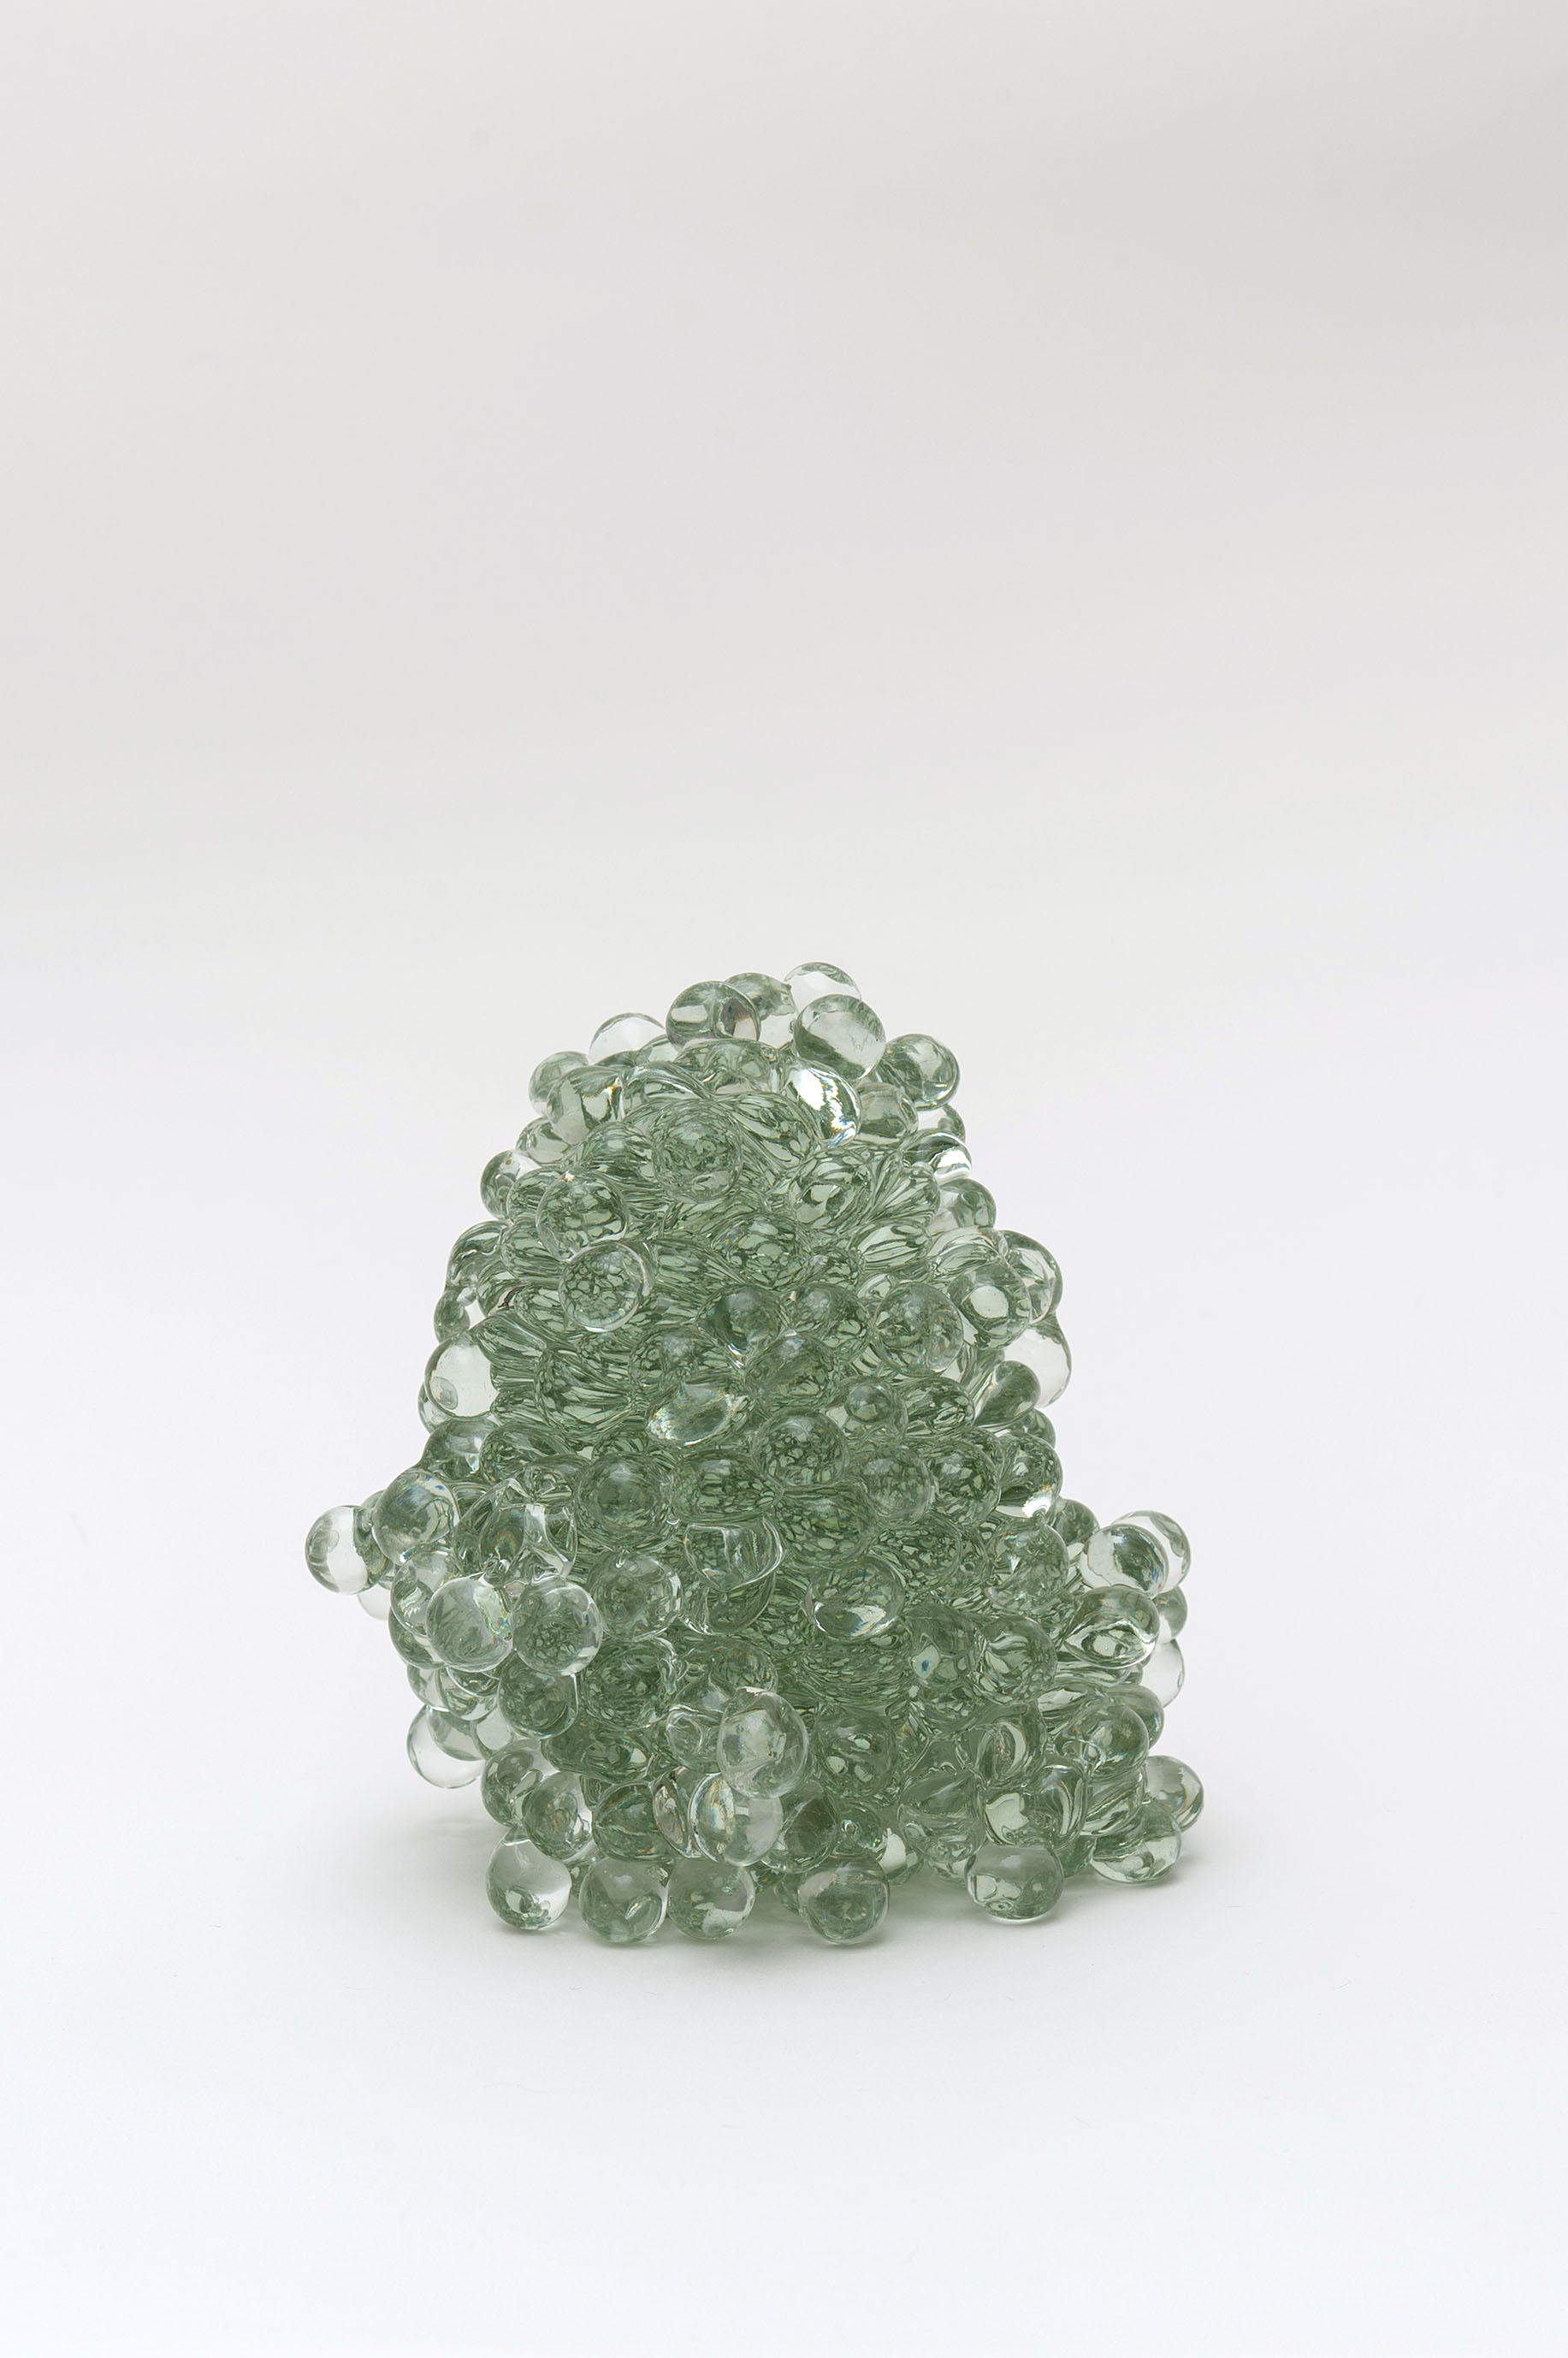 Glass No. 7 E, 2010